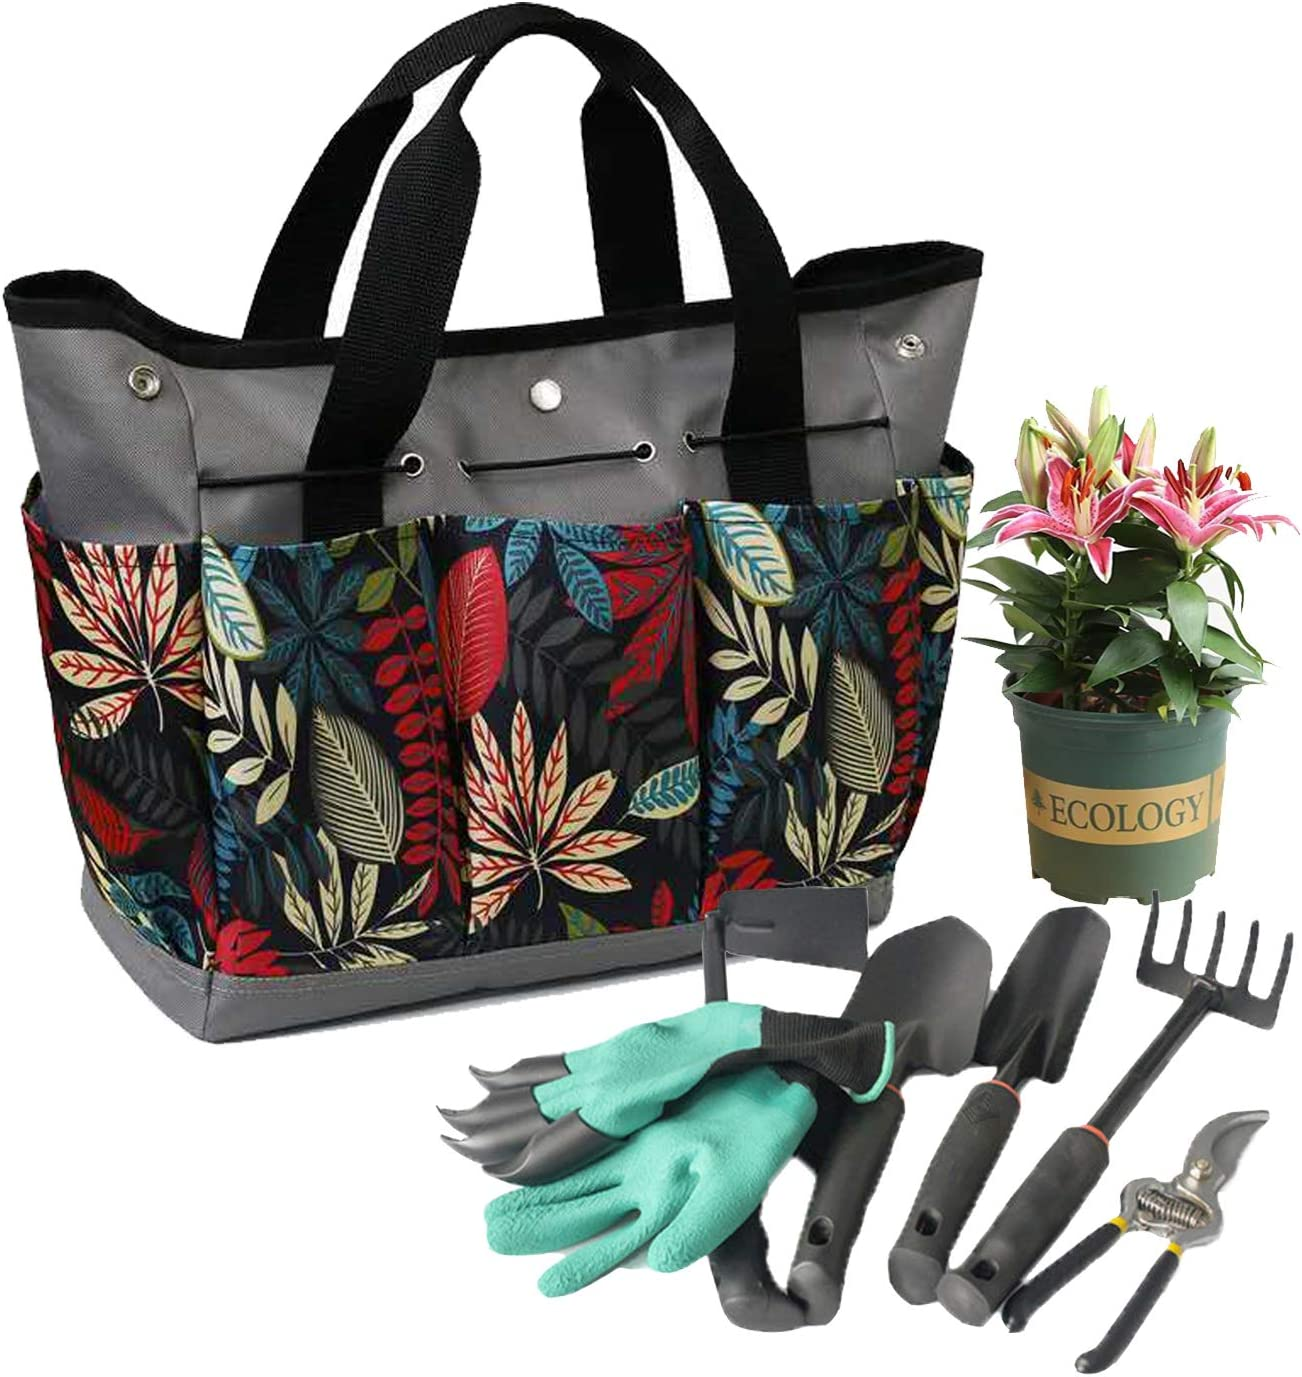 Garden Tote Portable Gardening Organizer with 8 Pockets Garden Tools Tote Bag with Elastic Bands to Hold the Tools Stand Up Bottom Great Gift Tool Bag for Women/Men's Garden Works(Tools Not Included)